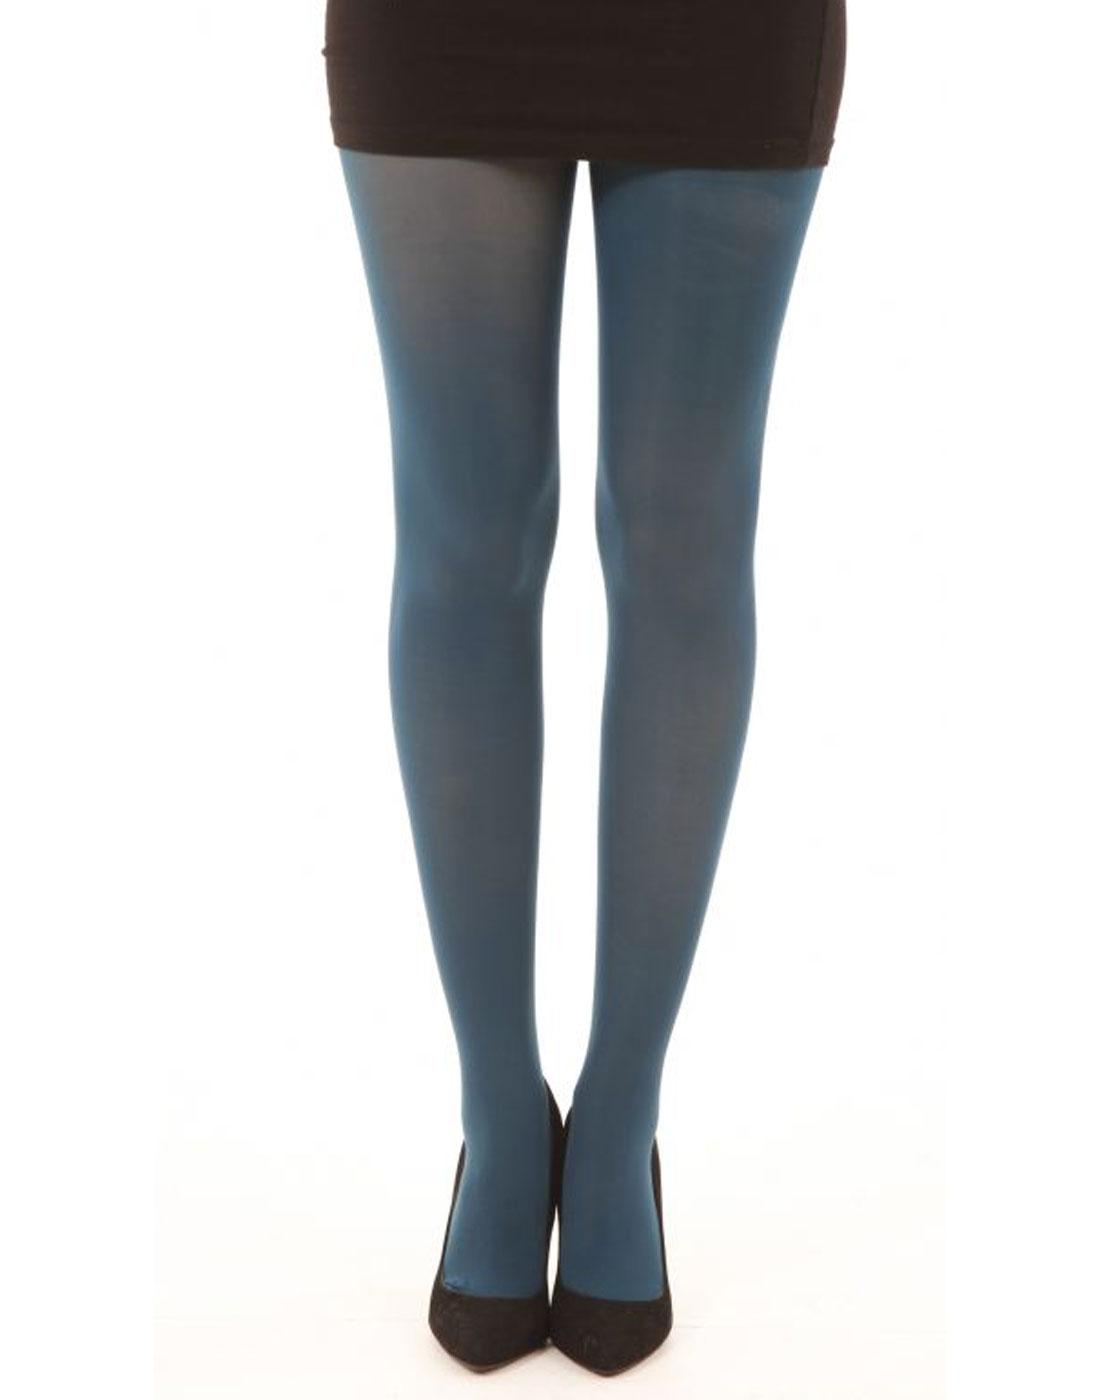 + PAMELA MANN 80 Denier Opaque Tights in Dark Teal